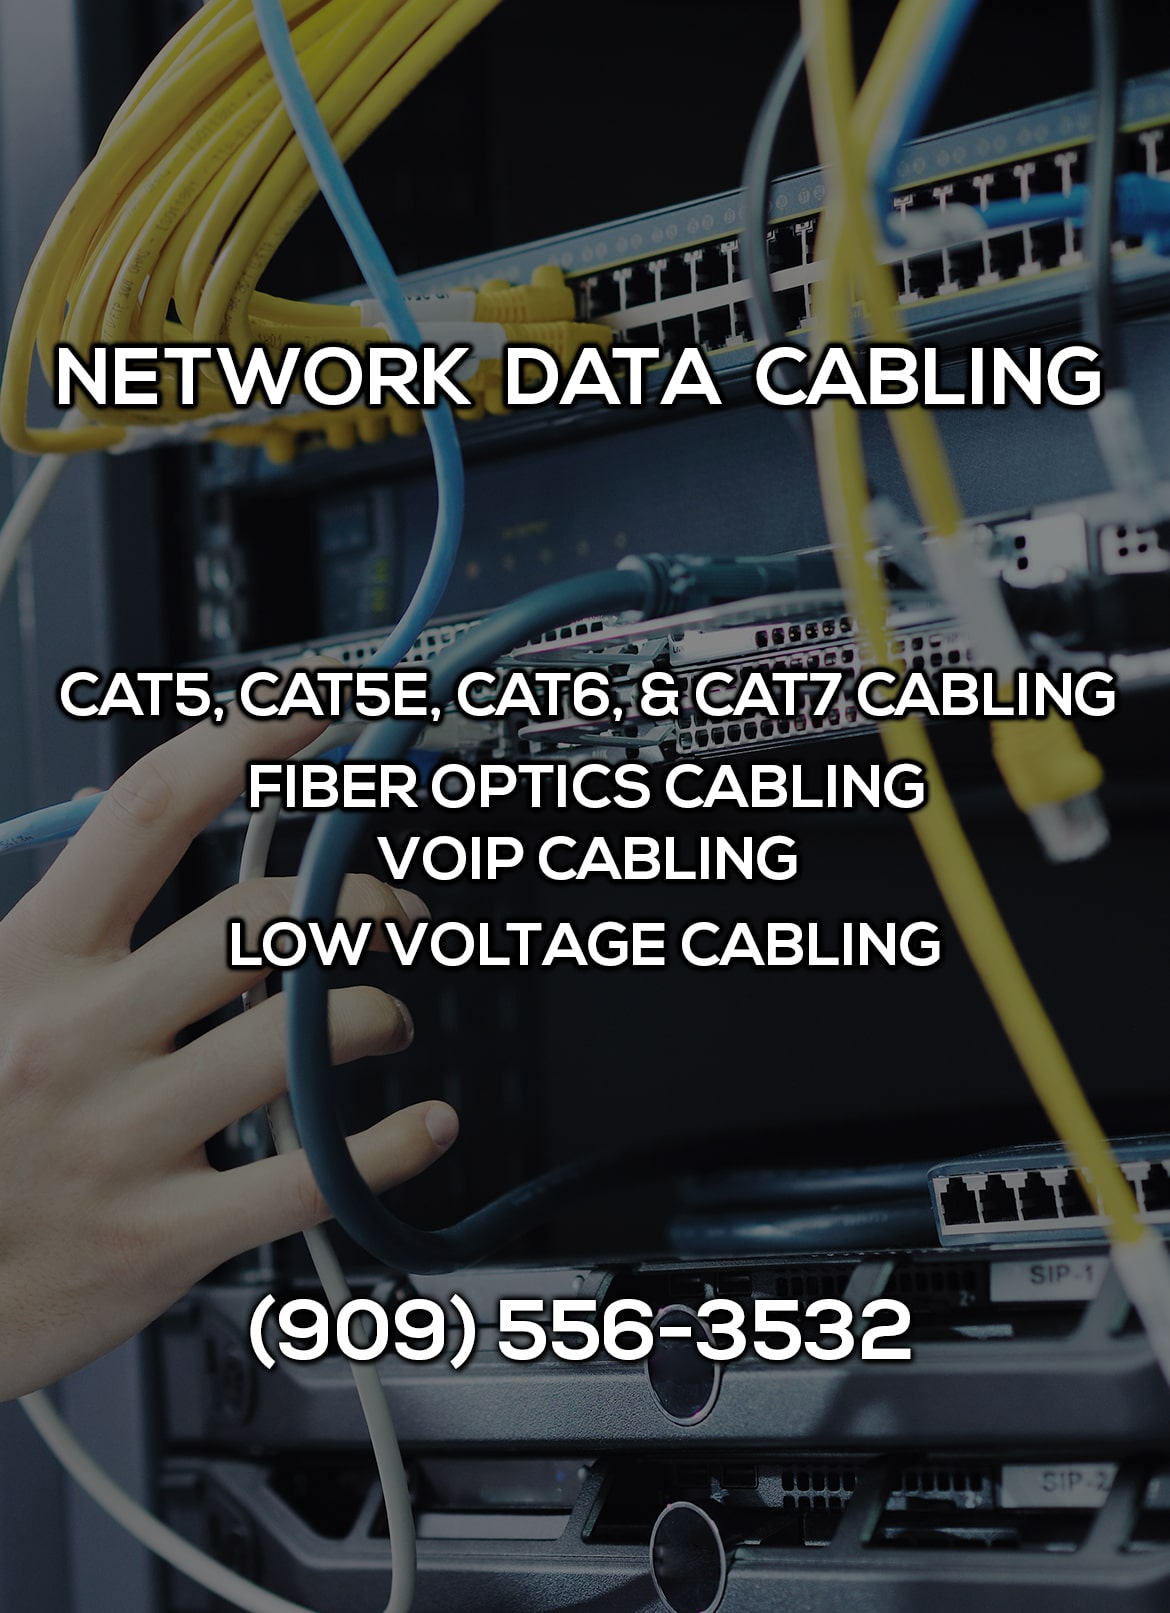 Network Data Cabling in La Quinta CA